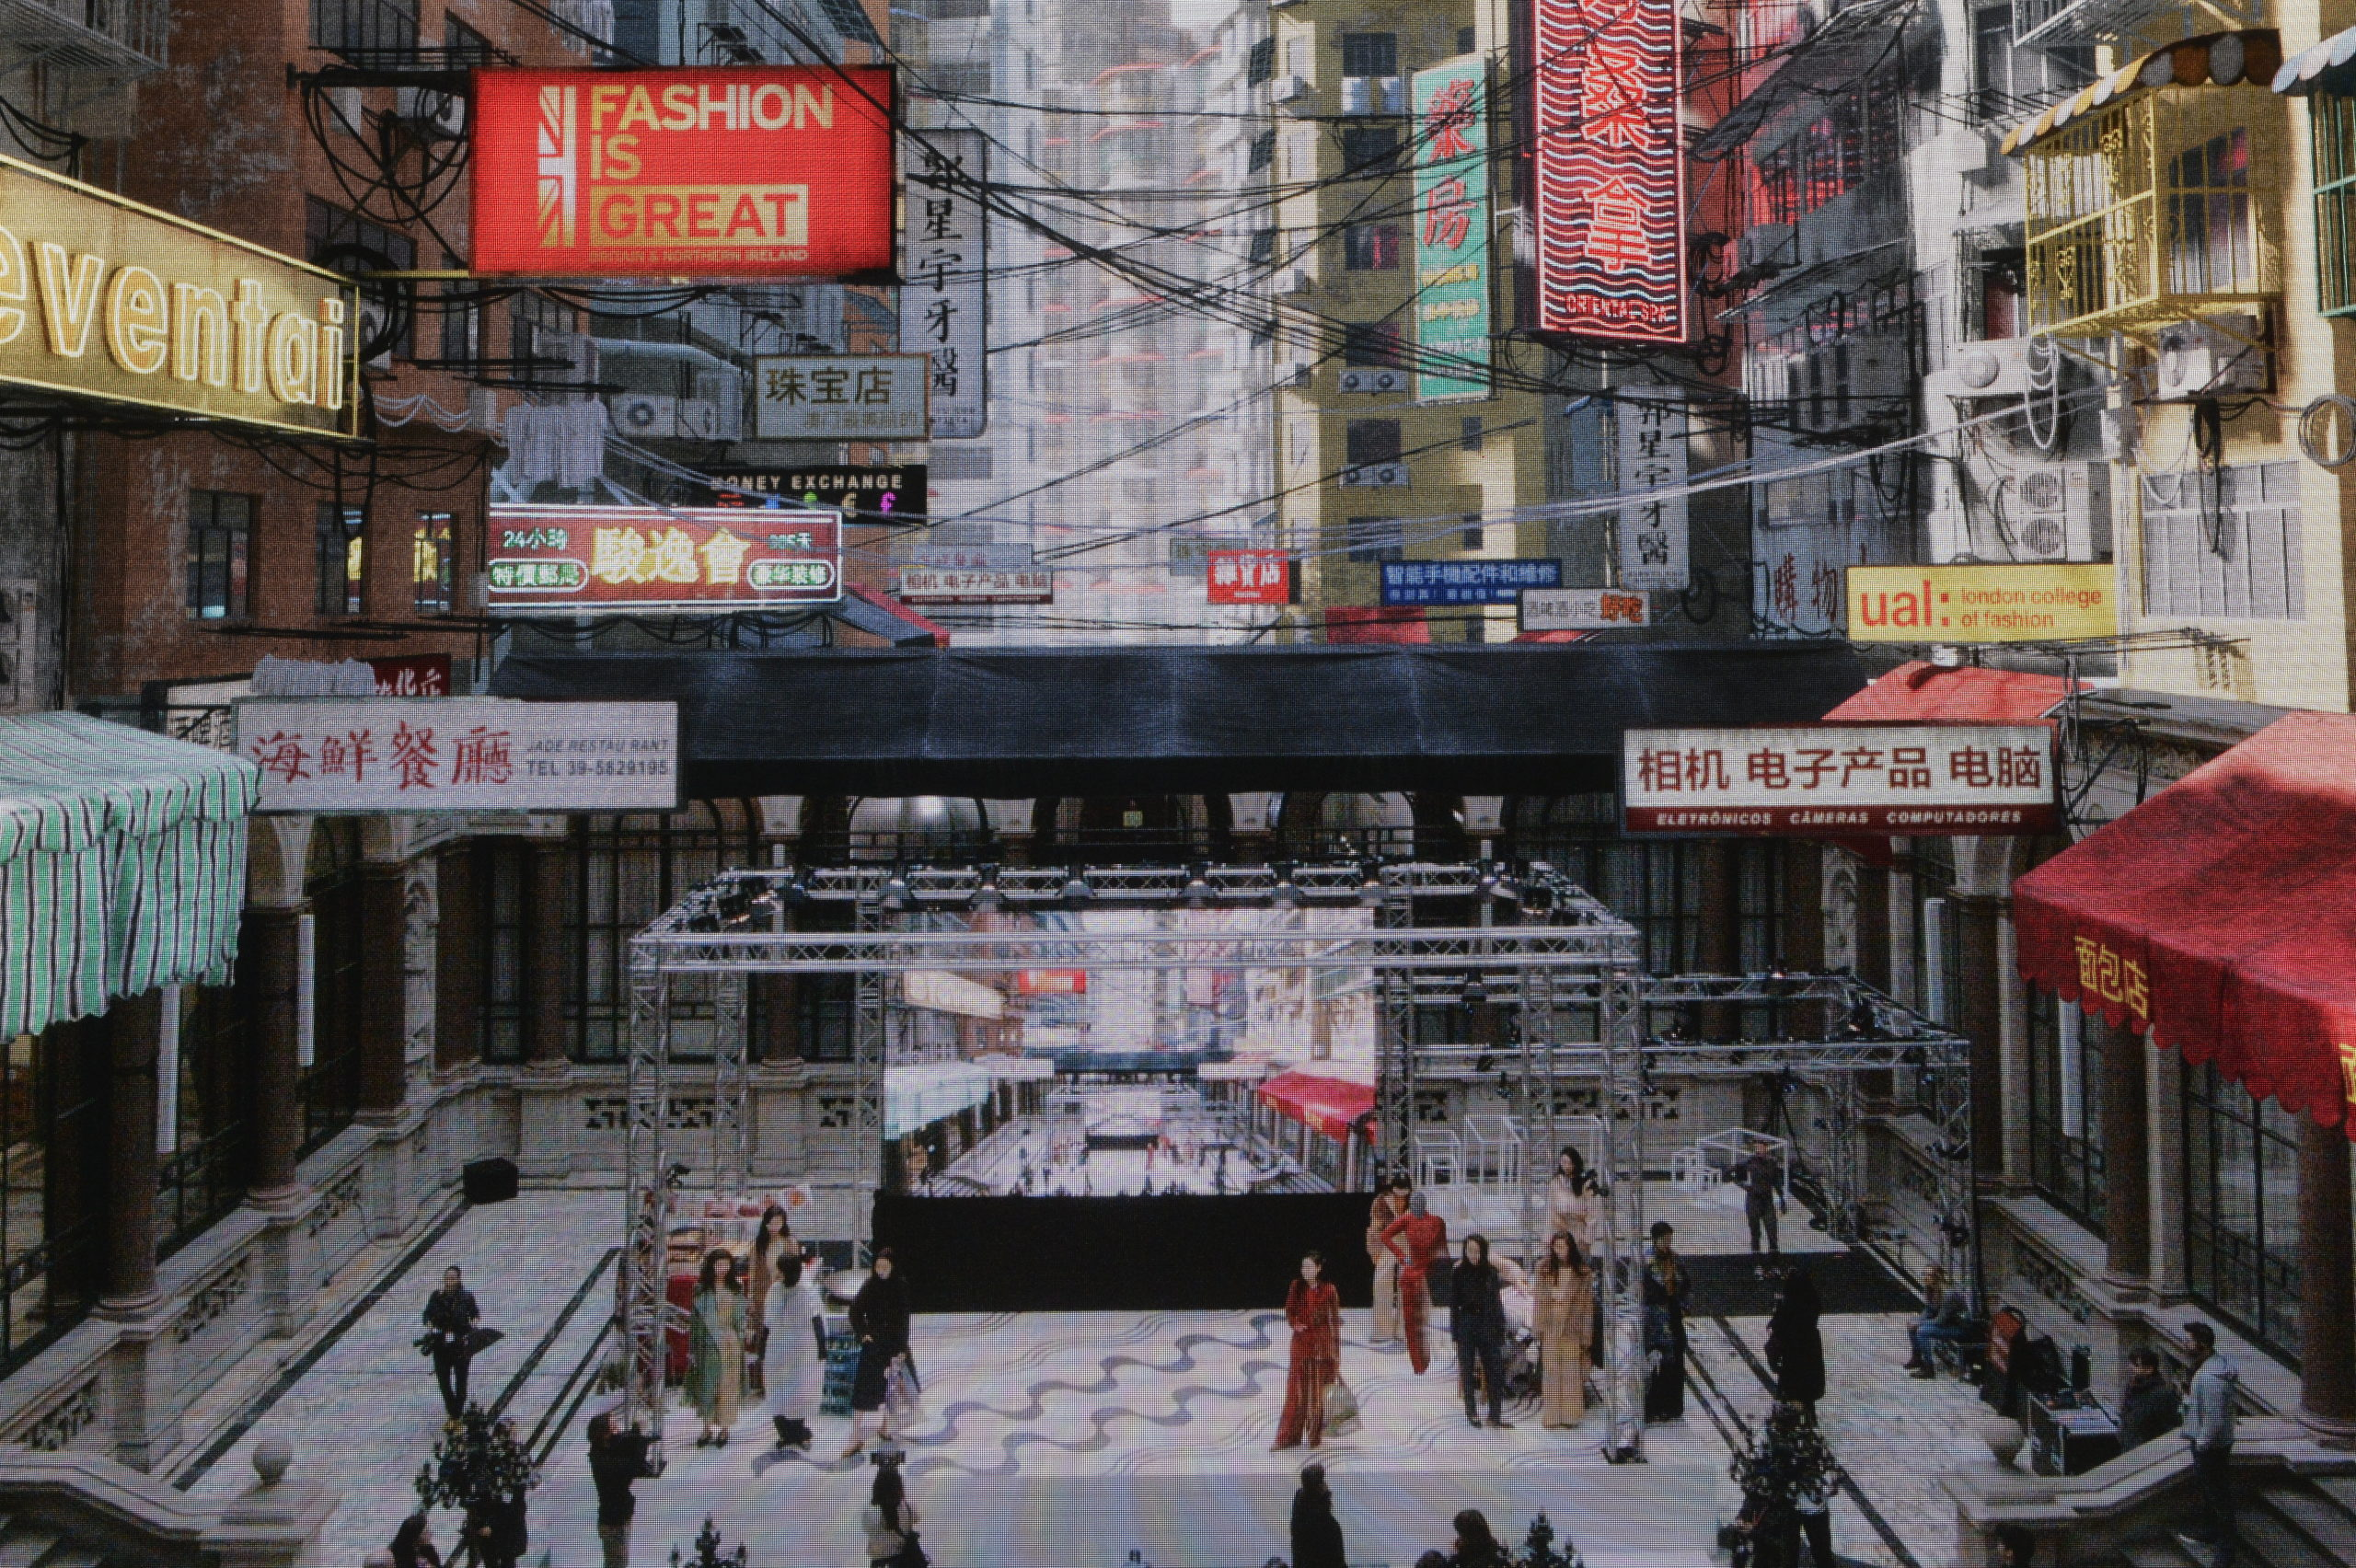 CGI real-time augmented scene of Macau on building with presentation stages with models